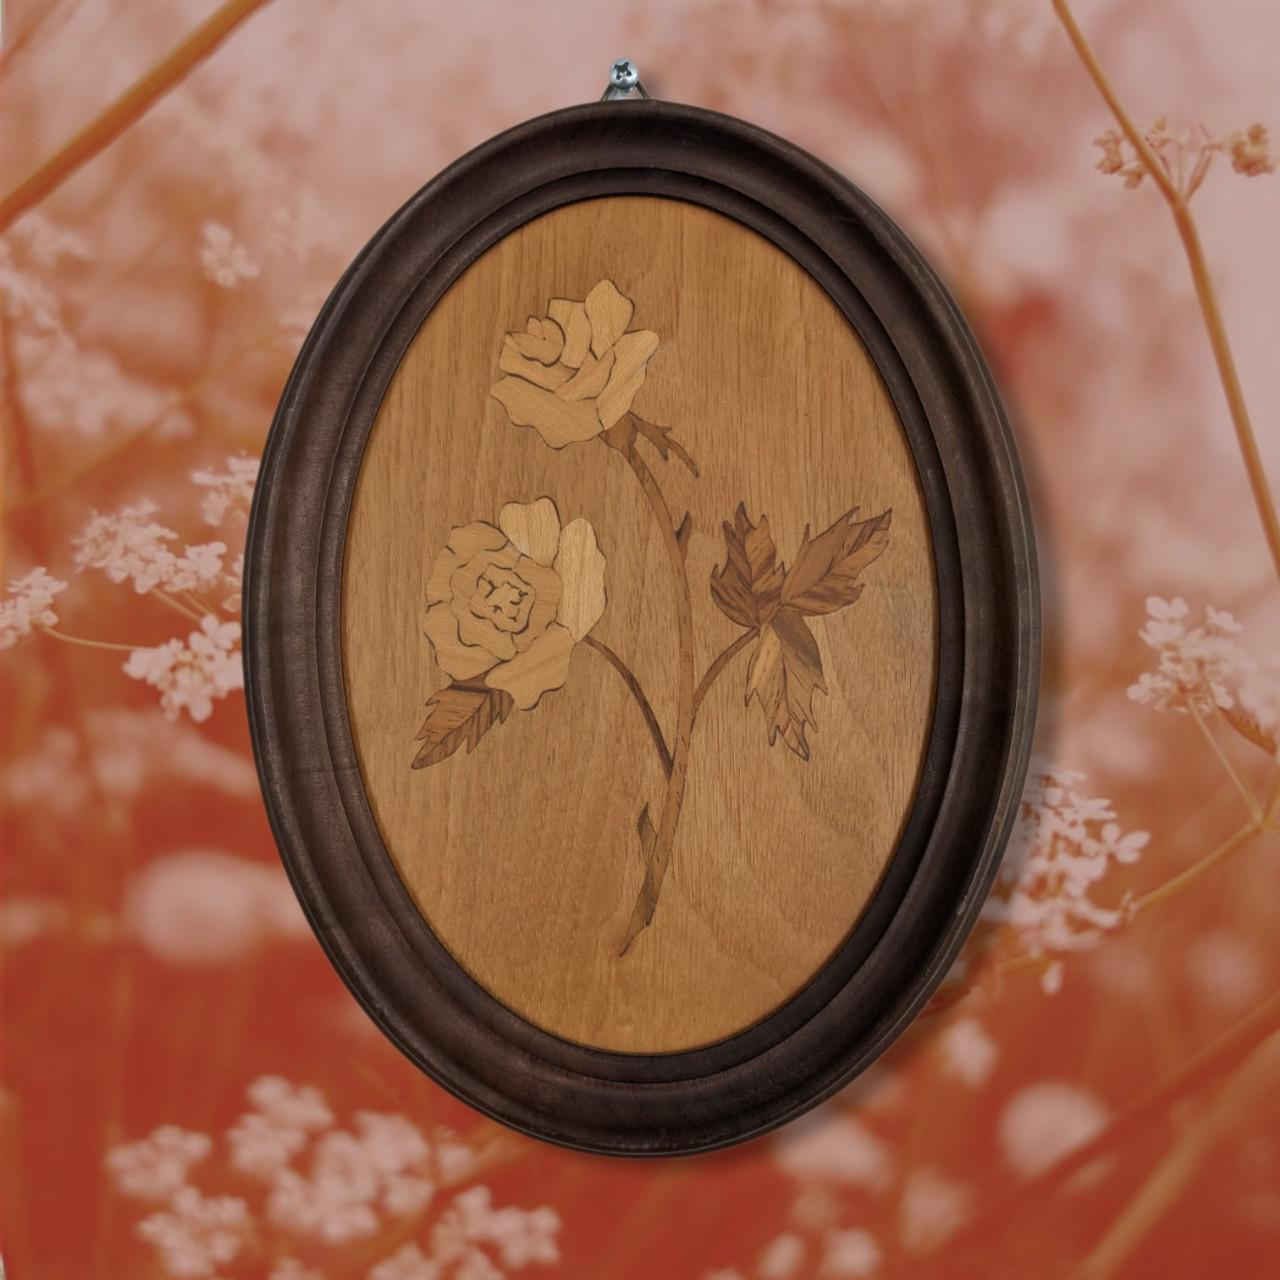 Product Image 1 - Handmade Wooden Rose Cameo Oval